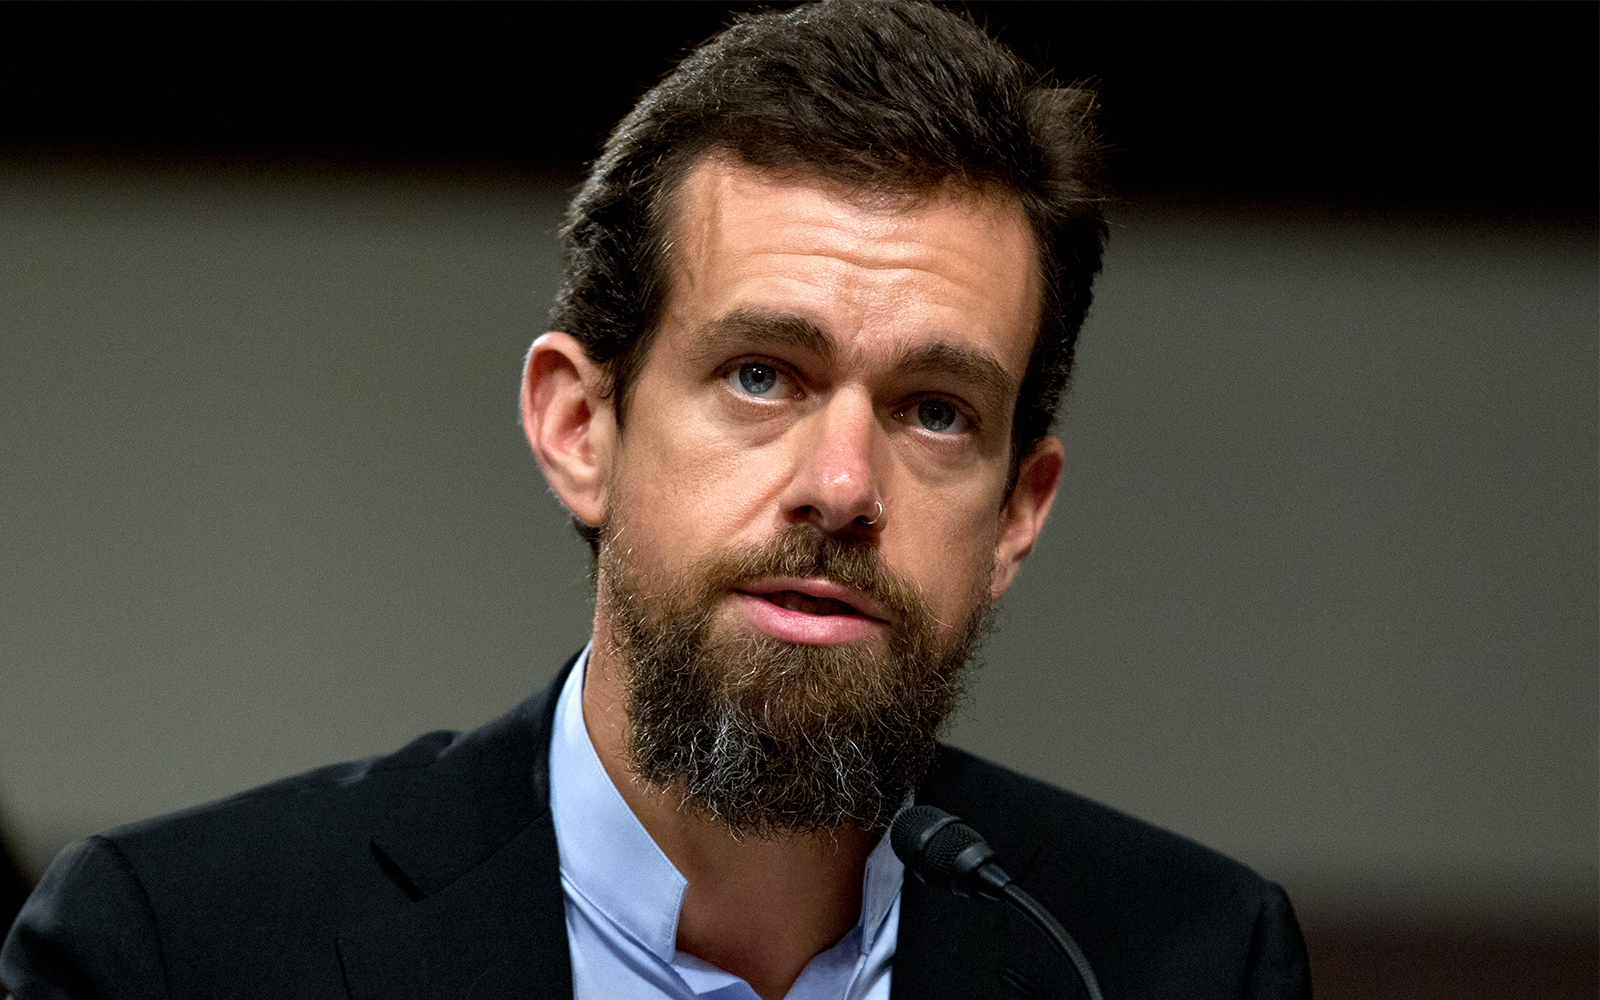 Twitter founder's account hacked, spews anti-Semitic and